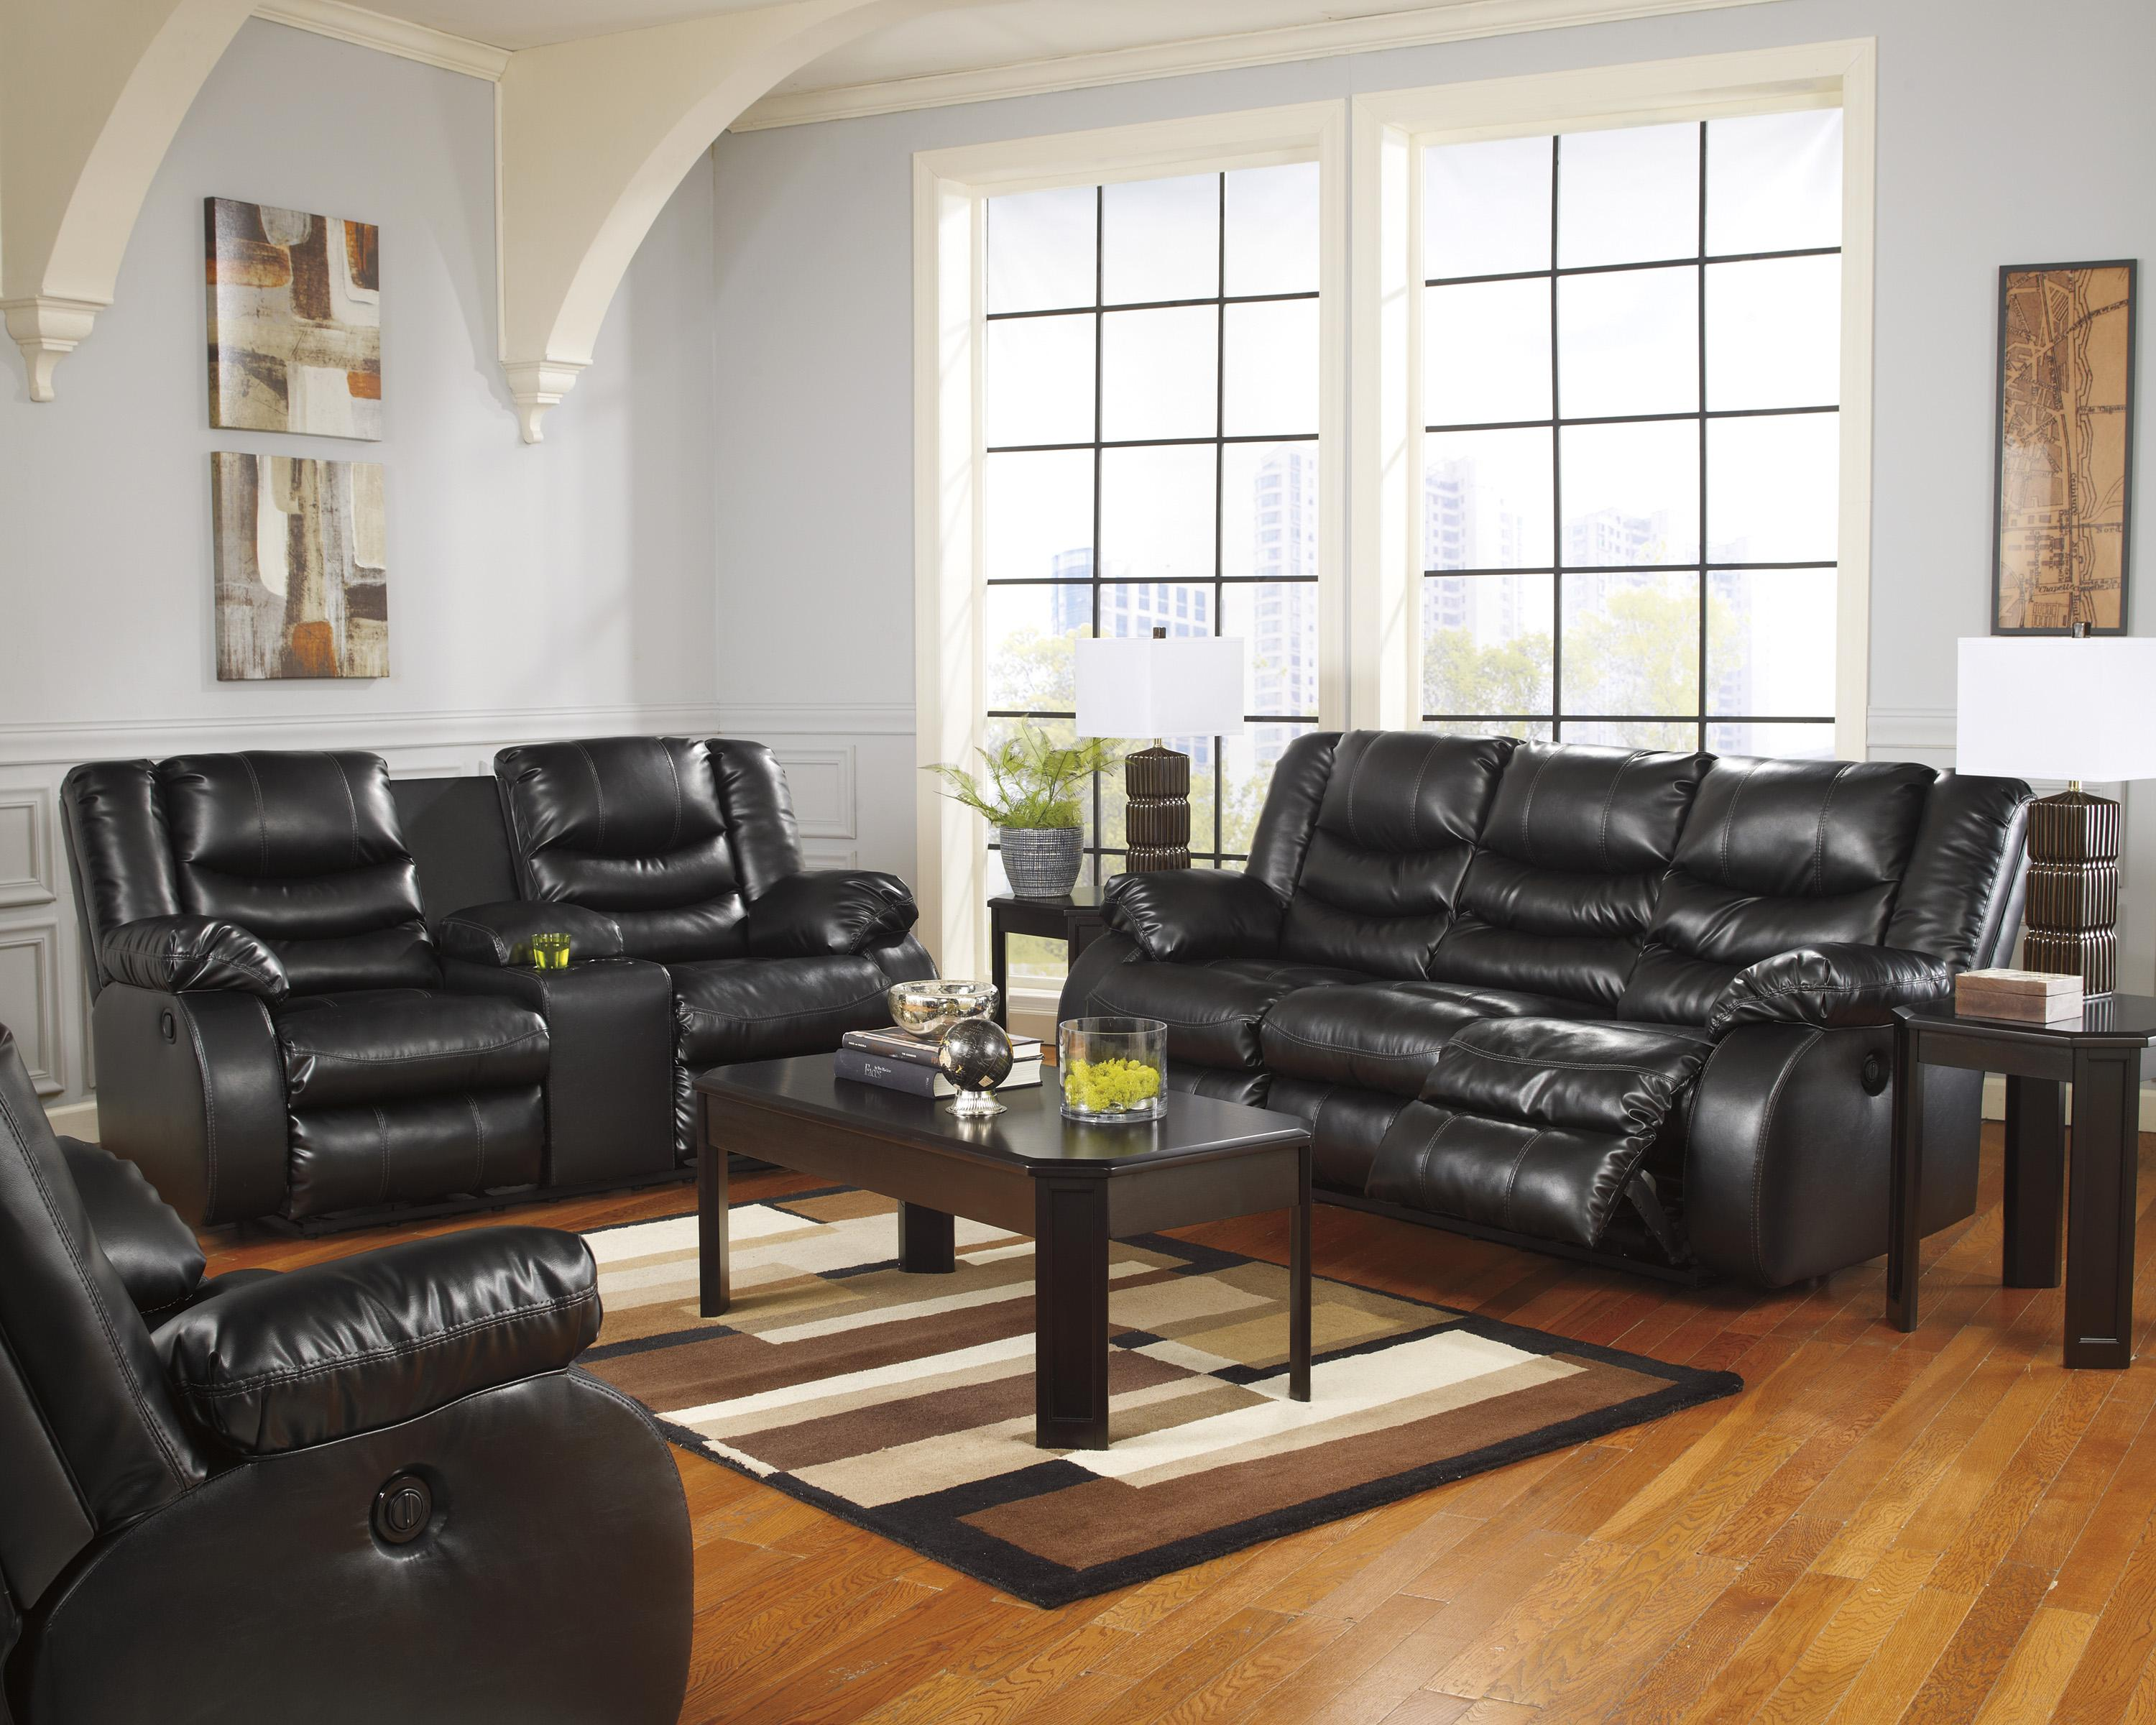 cheap for packages furniture leather of your agreeable badcock black living sets in fabulous room affordable